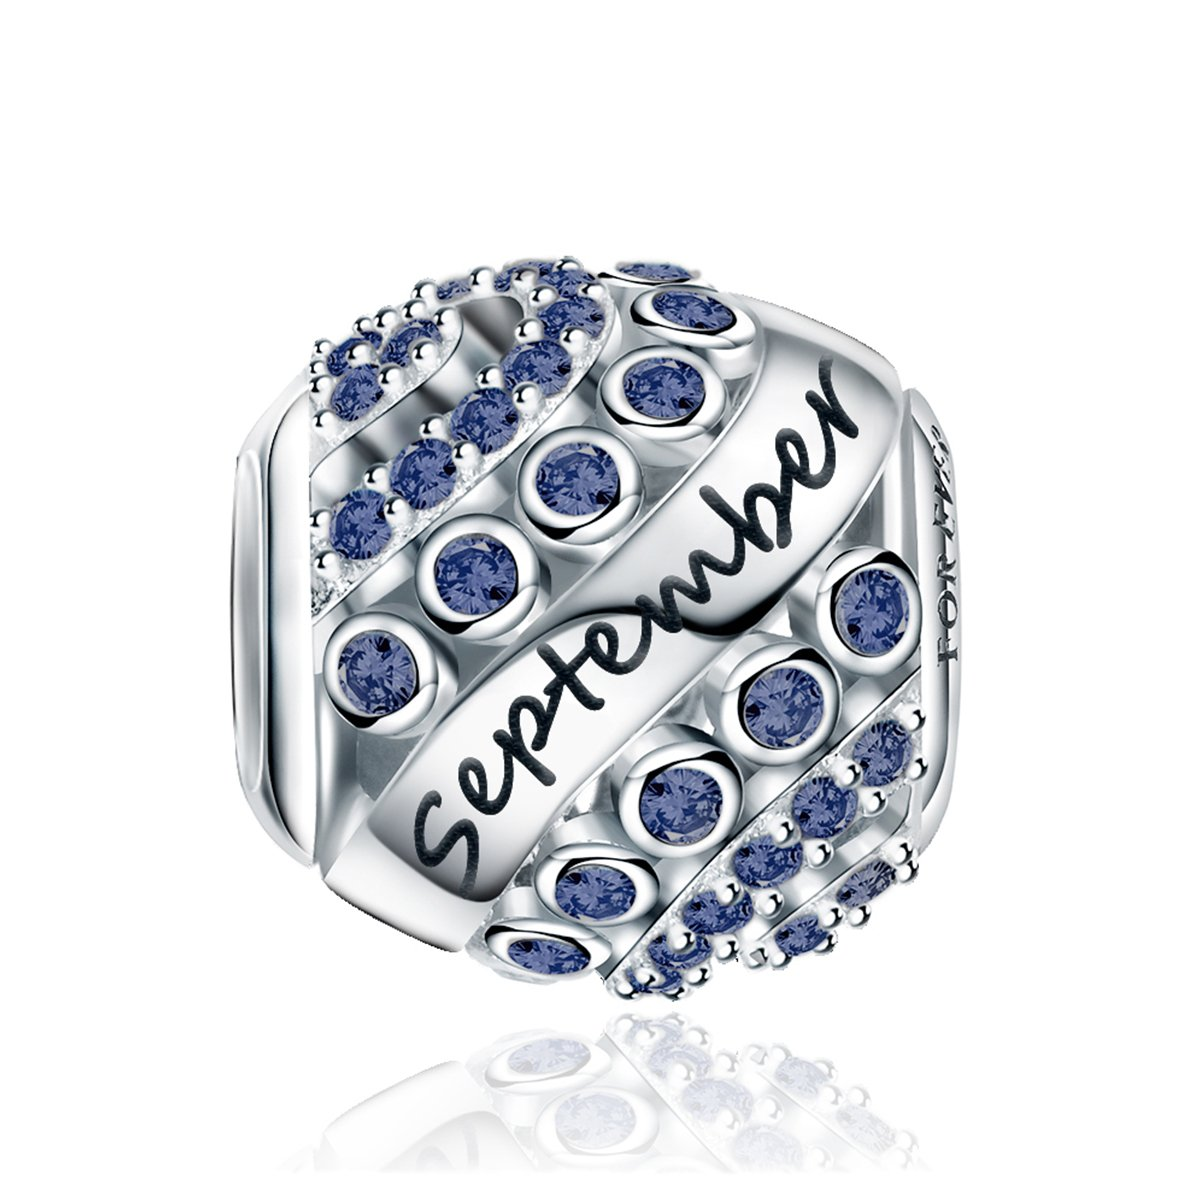 Forever Queen September Birthstone Charms for Pandora Charms Bracelet- 925 Sterling Silver Bead Openwork Charms, Happy Birthday Charms for Bracelet and Necklace FQ0004-9